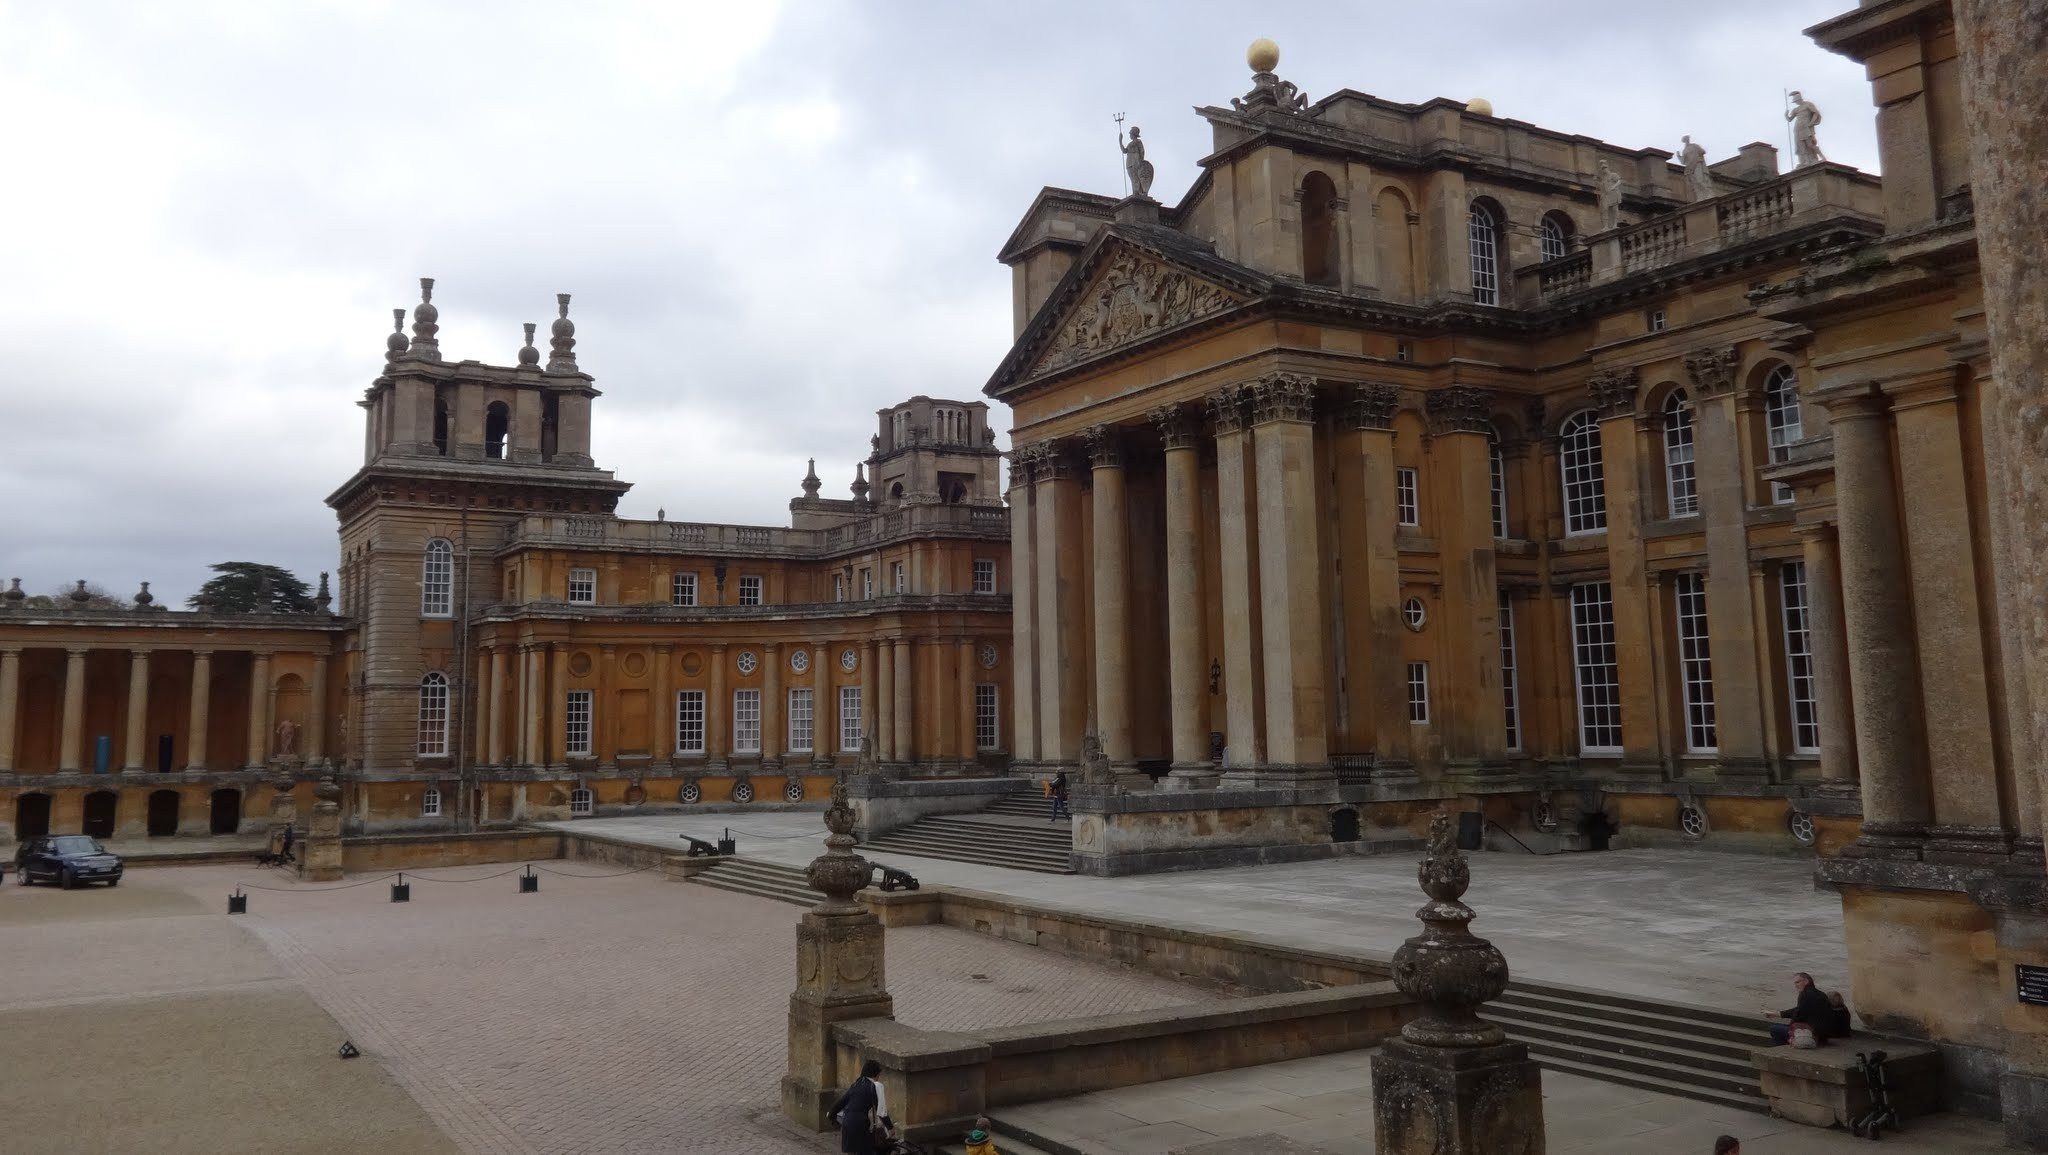 Blenheim palace : Birthplace of Winston Spencer Churchill